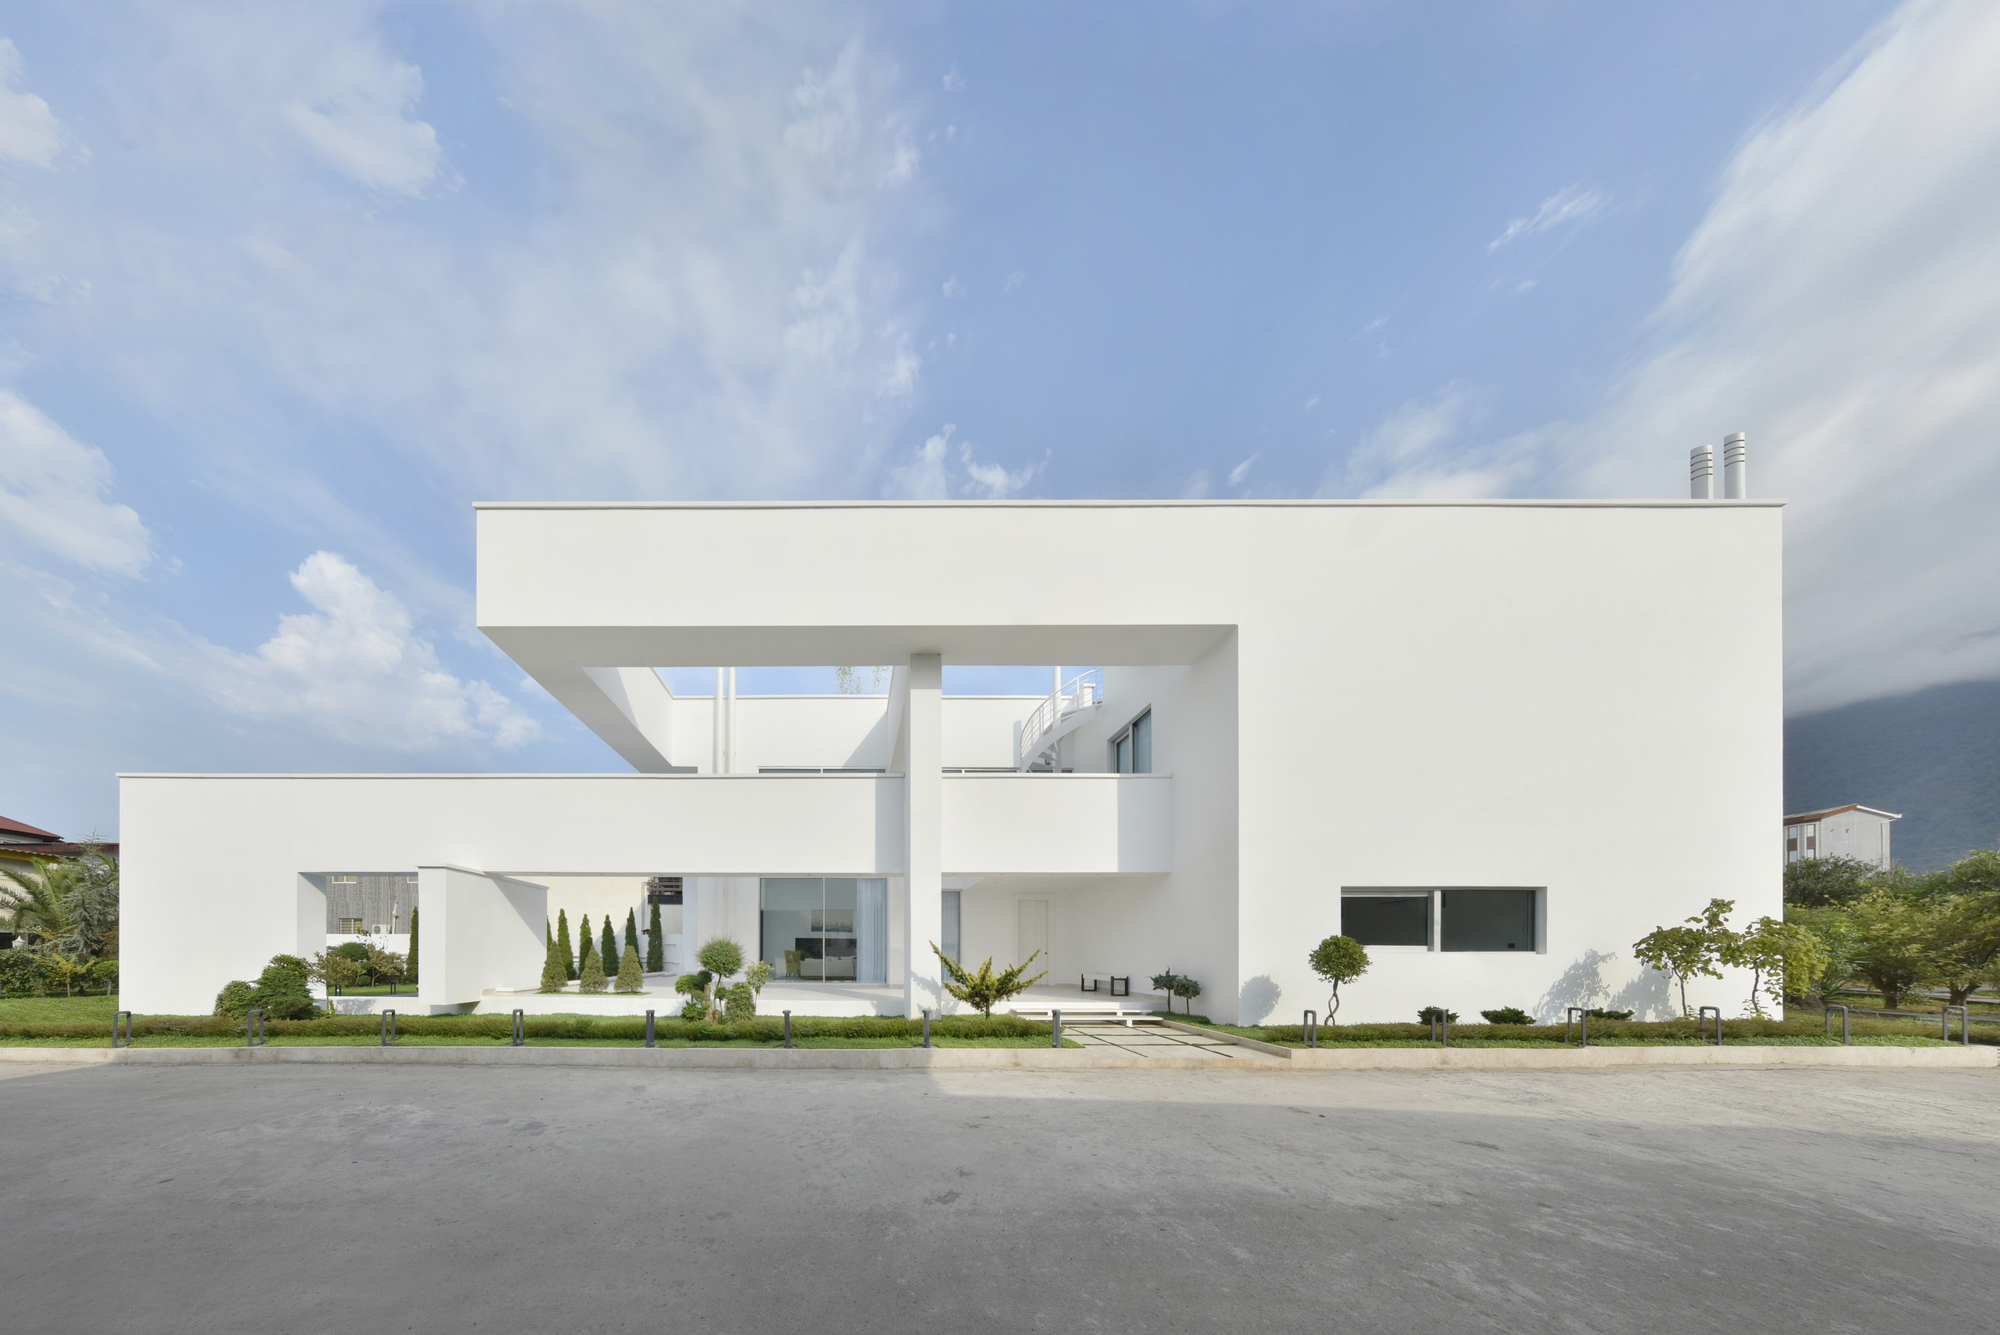 Moshref Villa / mrk office